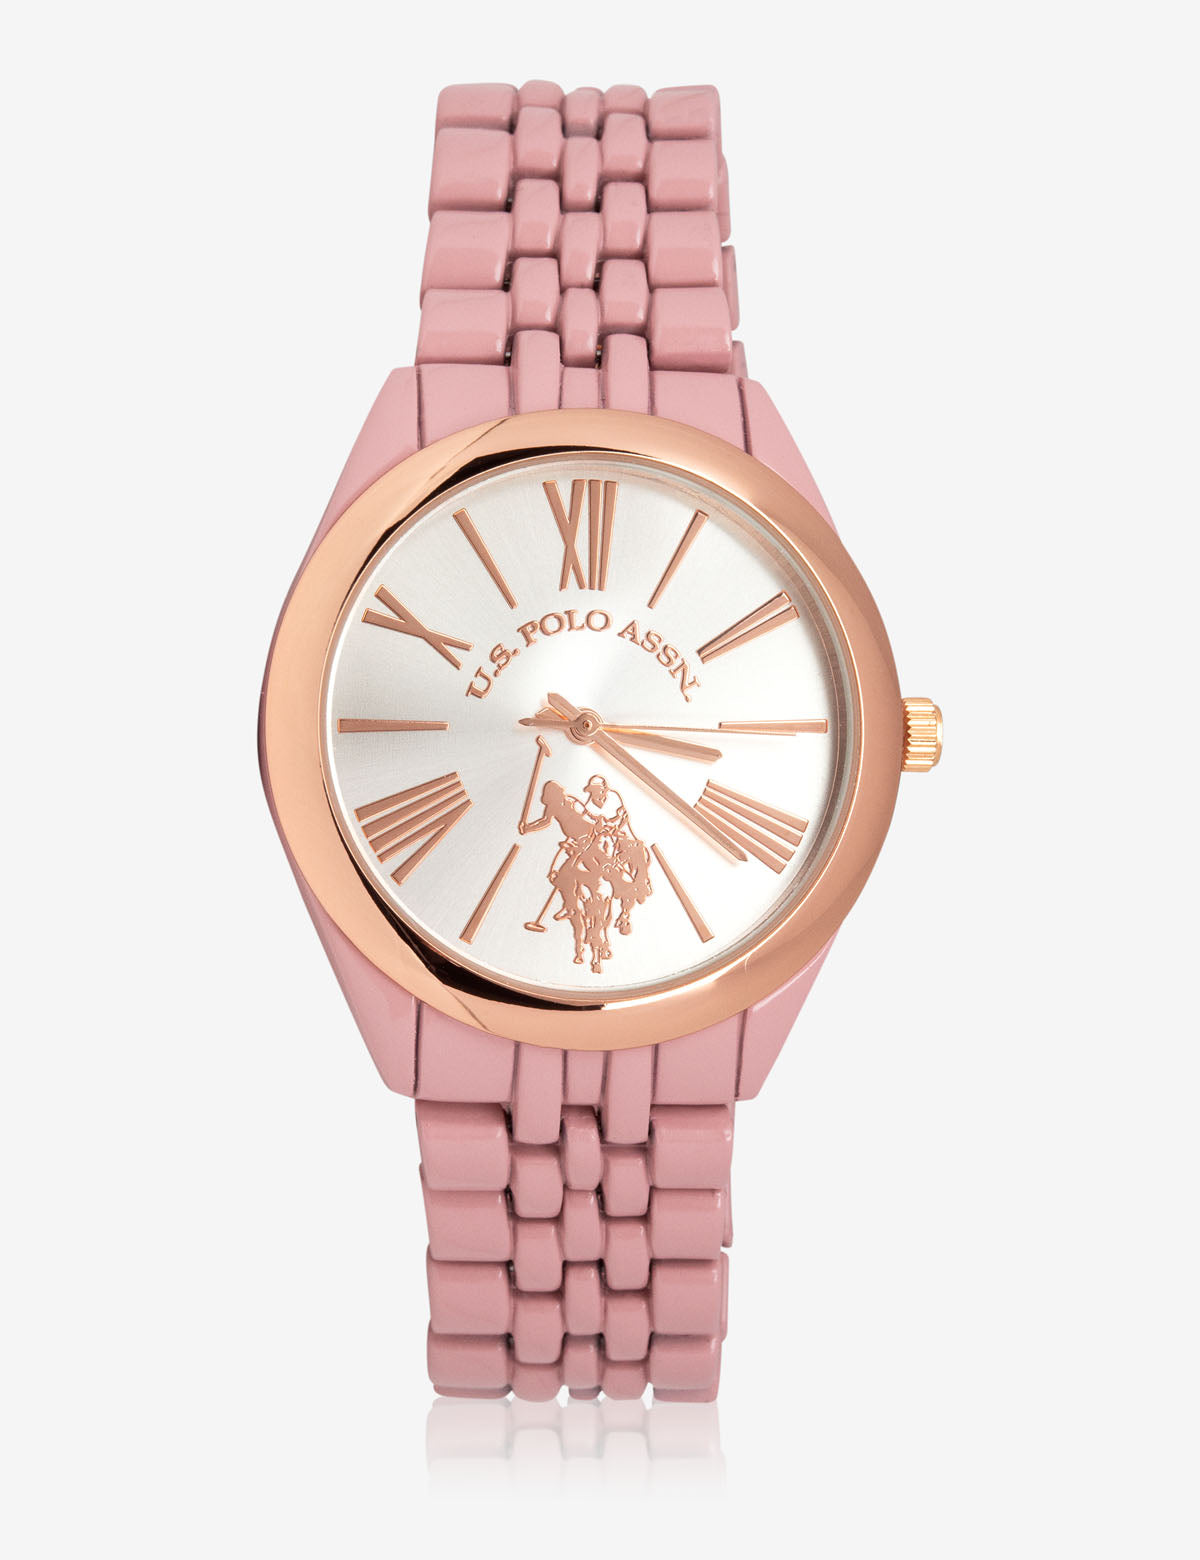 USPA WOMEN'S PINK & ROSEGOLD WATCH - U.S. Polo Assn.